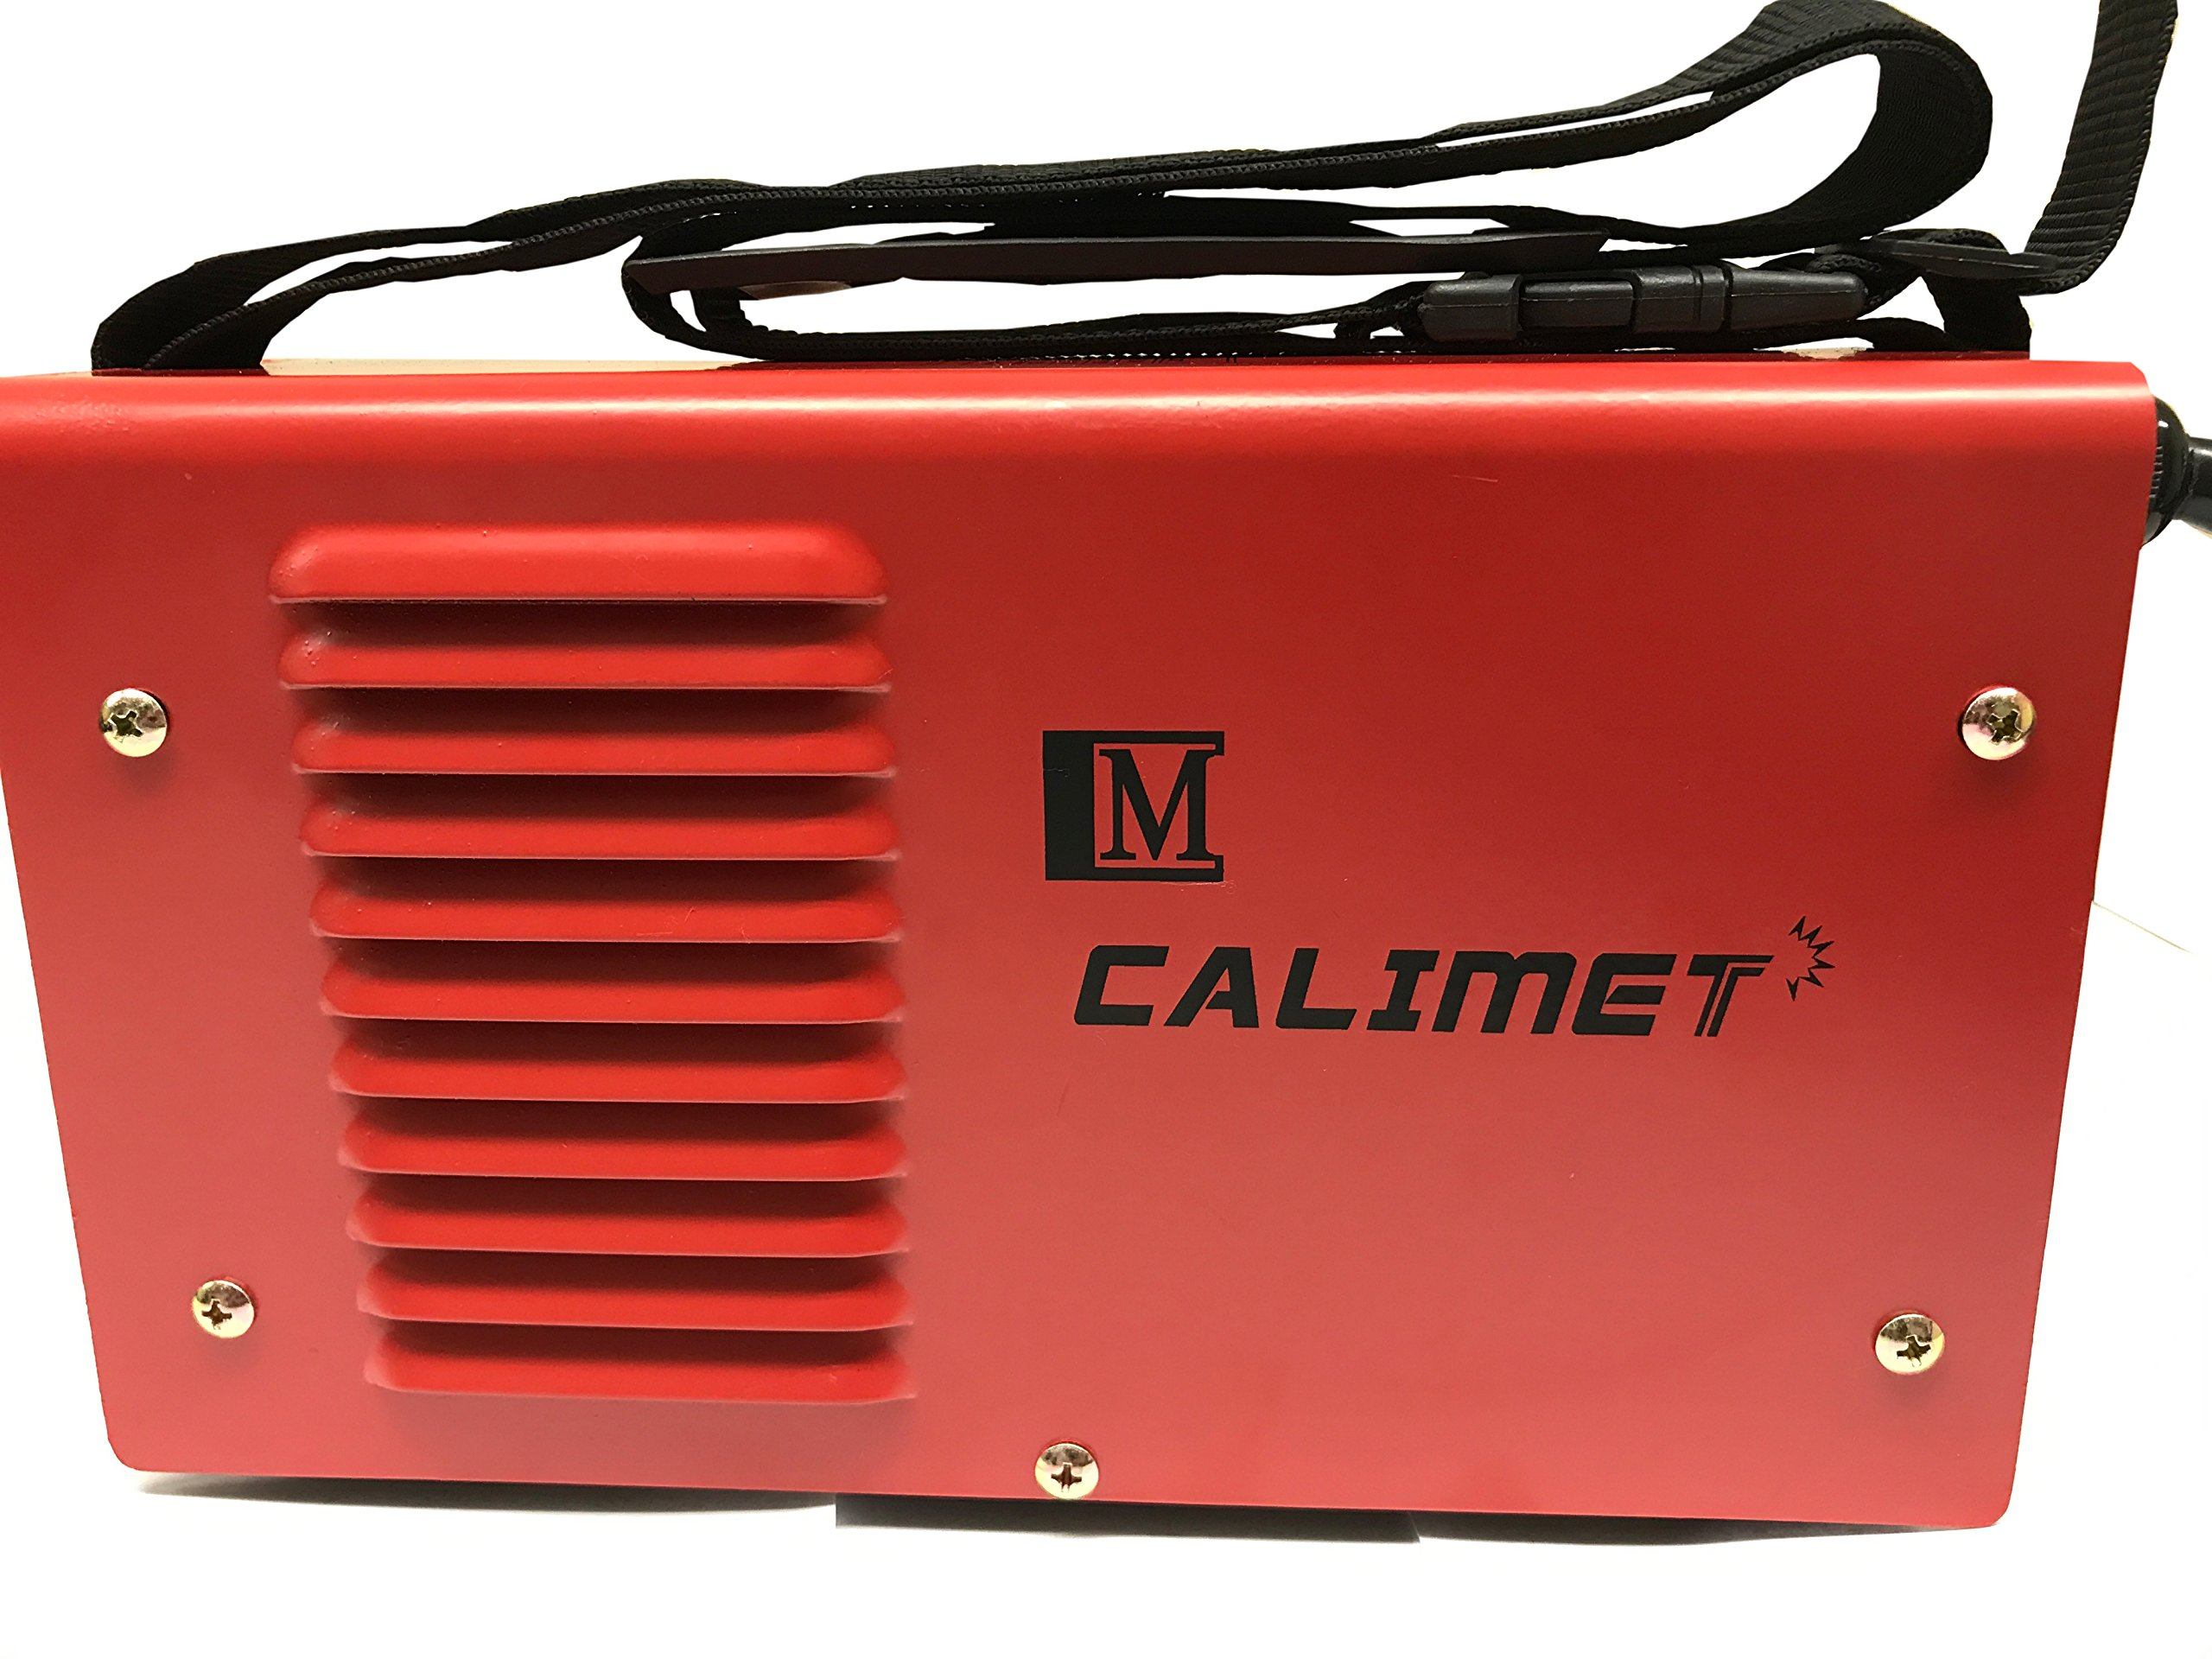 Calimetco Welding Machine Welder Mini/Light 8LB,Powerful, Long-lasting Work, Dual Voltage 115/230V, 160AMP. Great for Home and Professionals Use